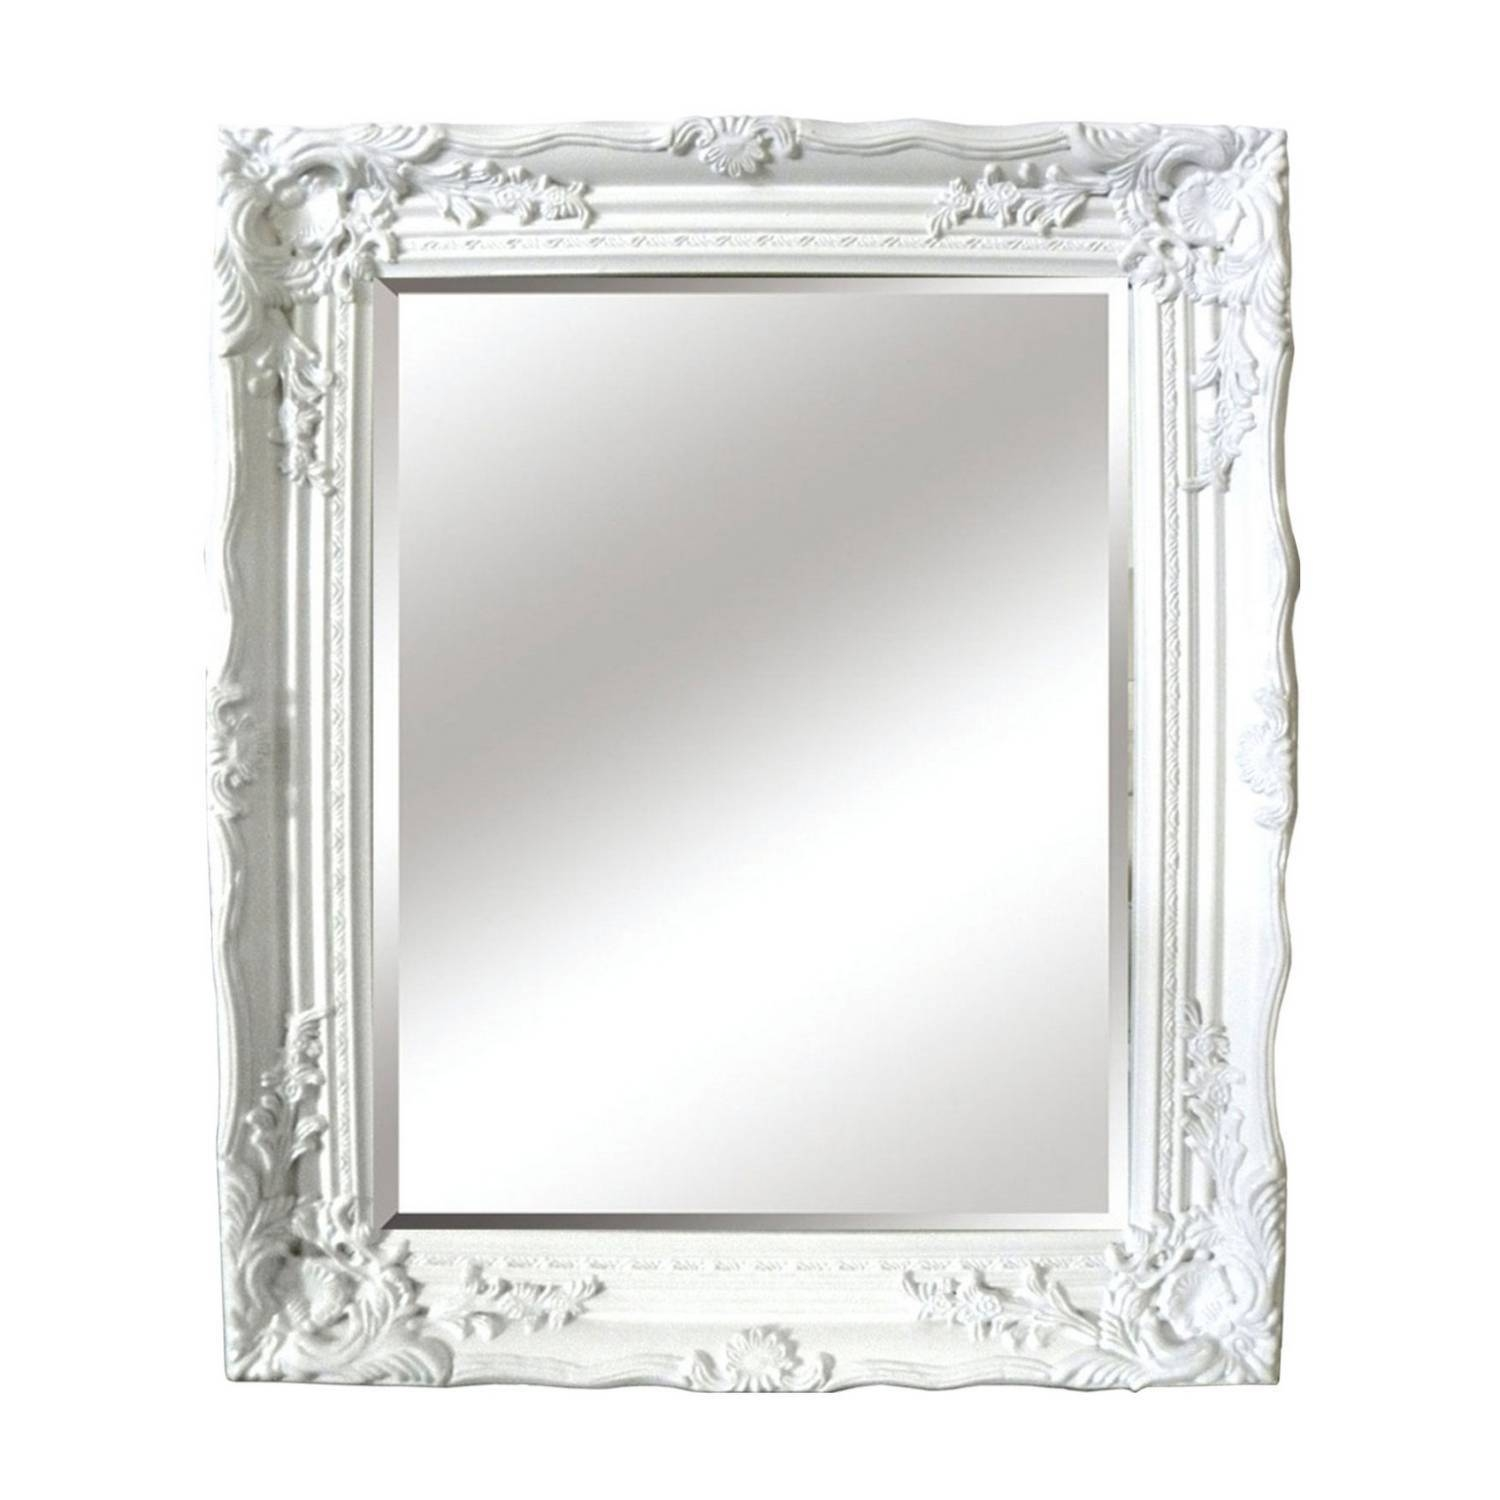 Antique Ornate Mirror Within White Ornate Mirror (Image 2 of 15)